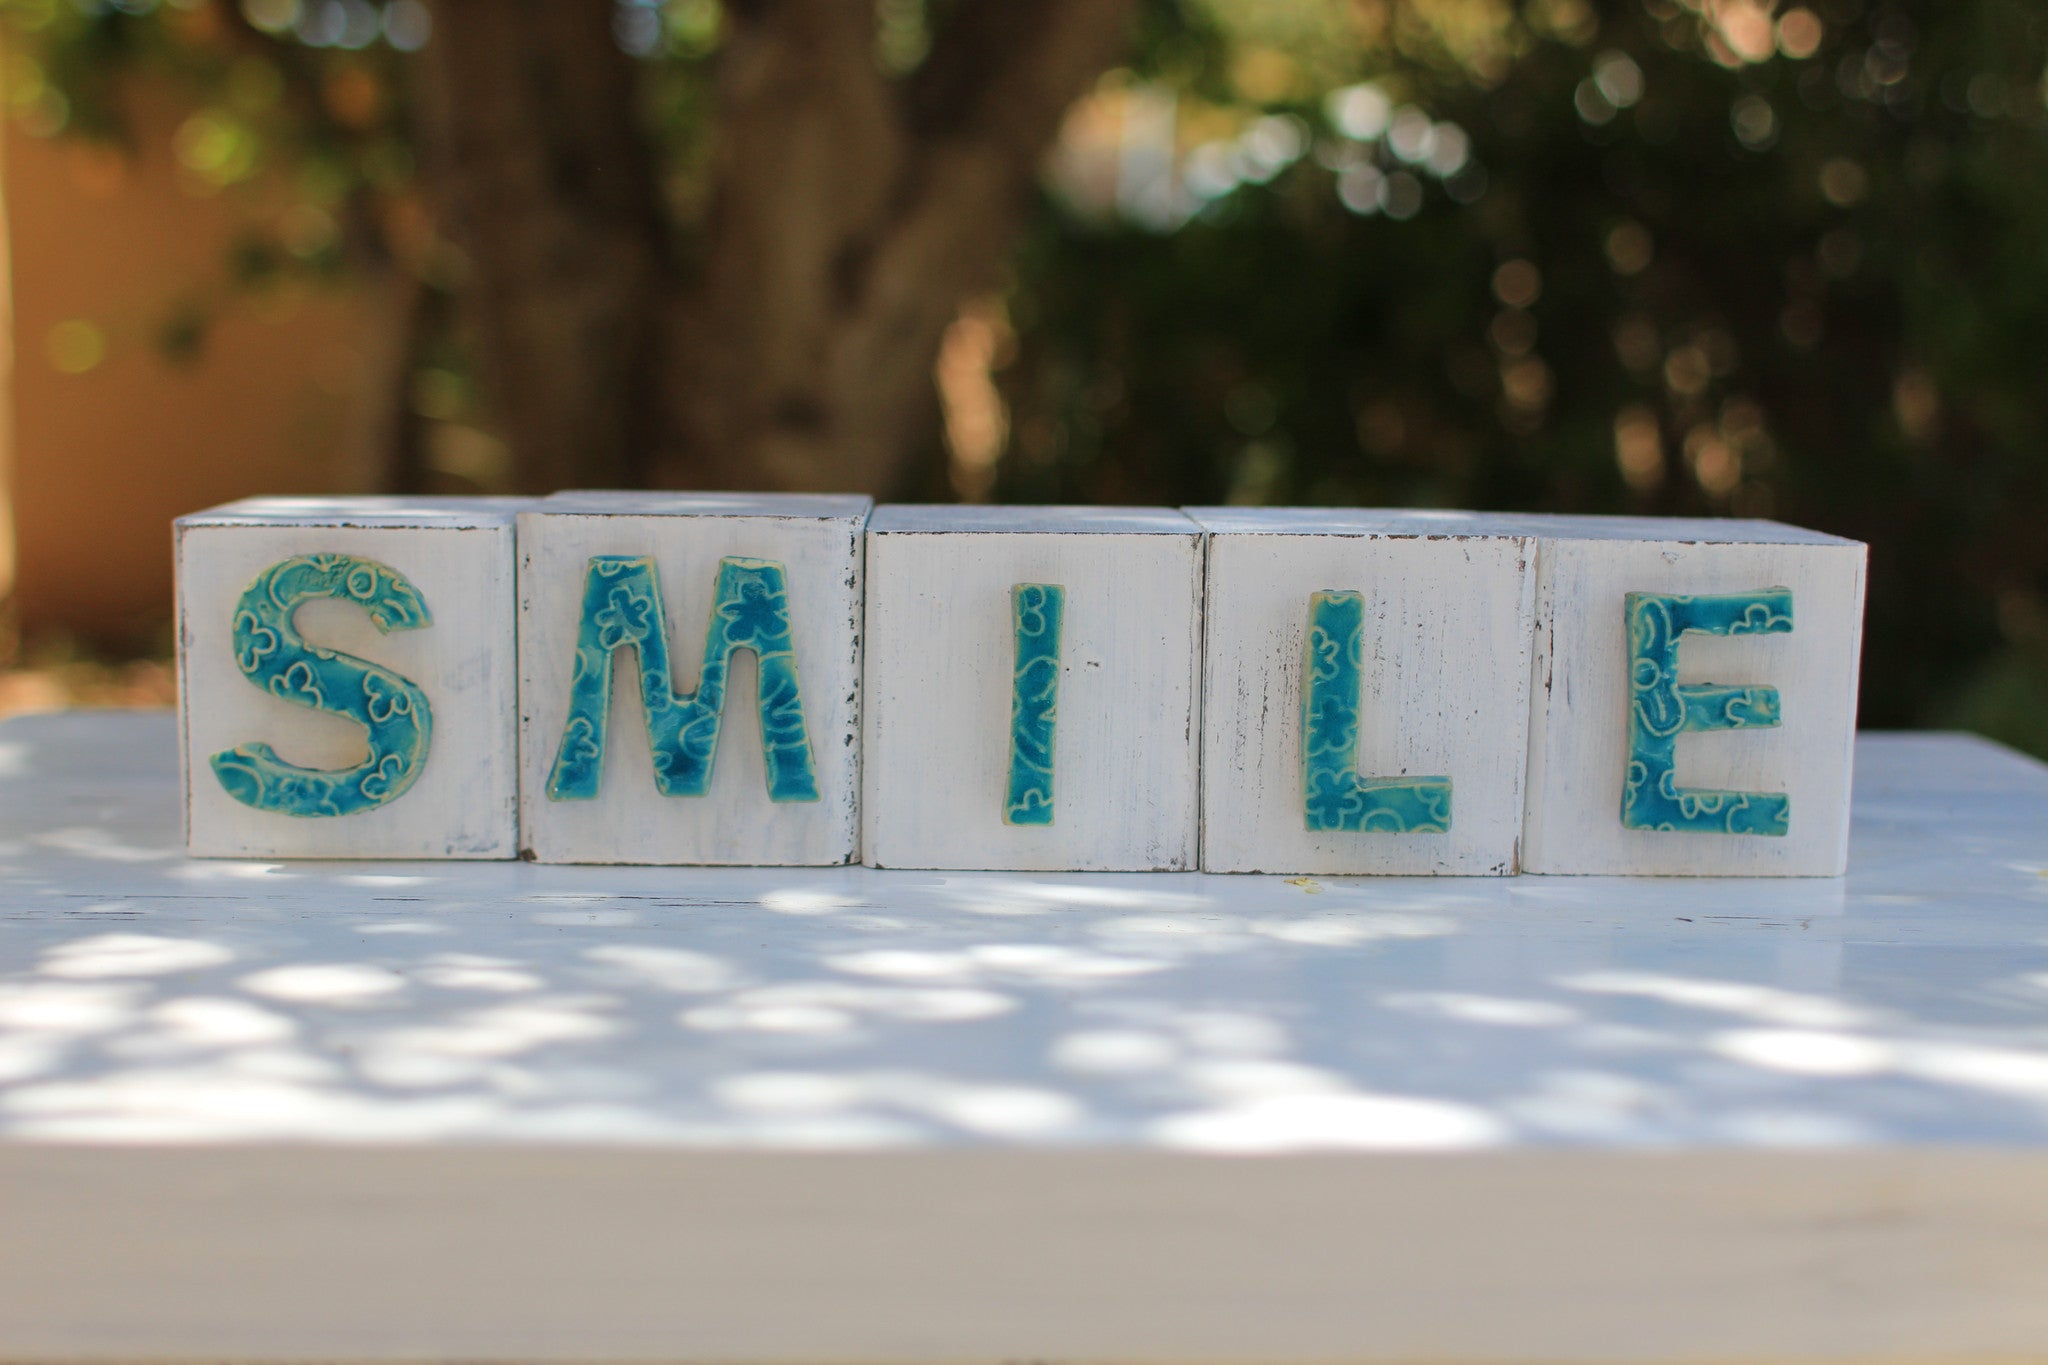 Handmade wooden letter blocks Motivational gift SMILE wooden blocks - Ceramics By Orly  - 1